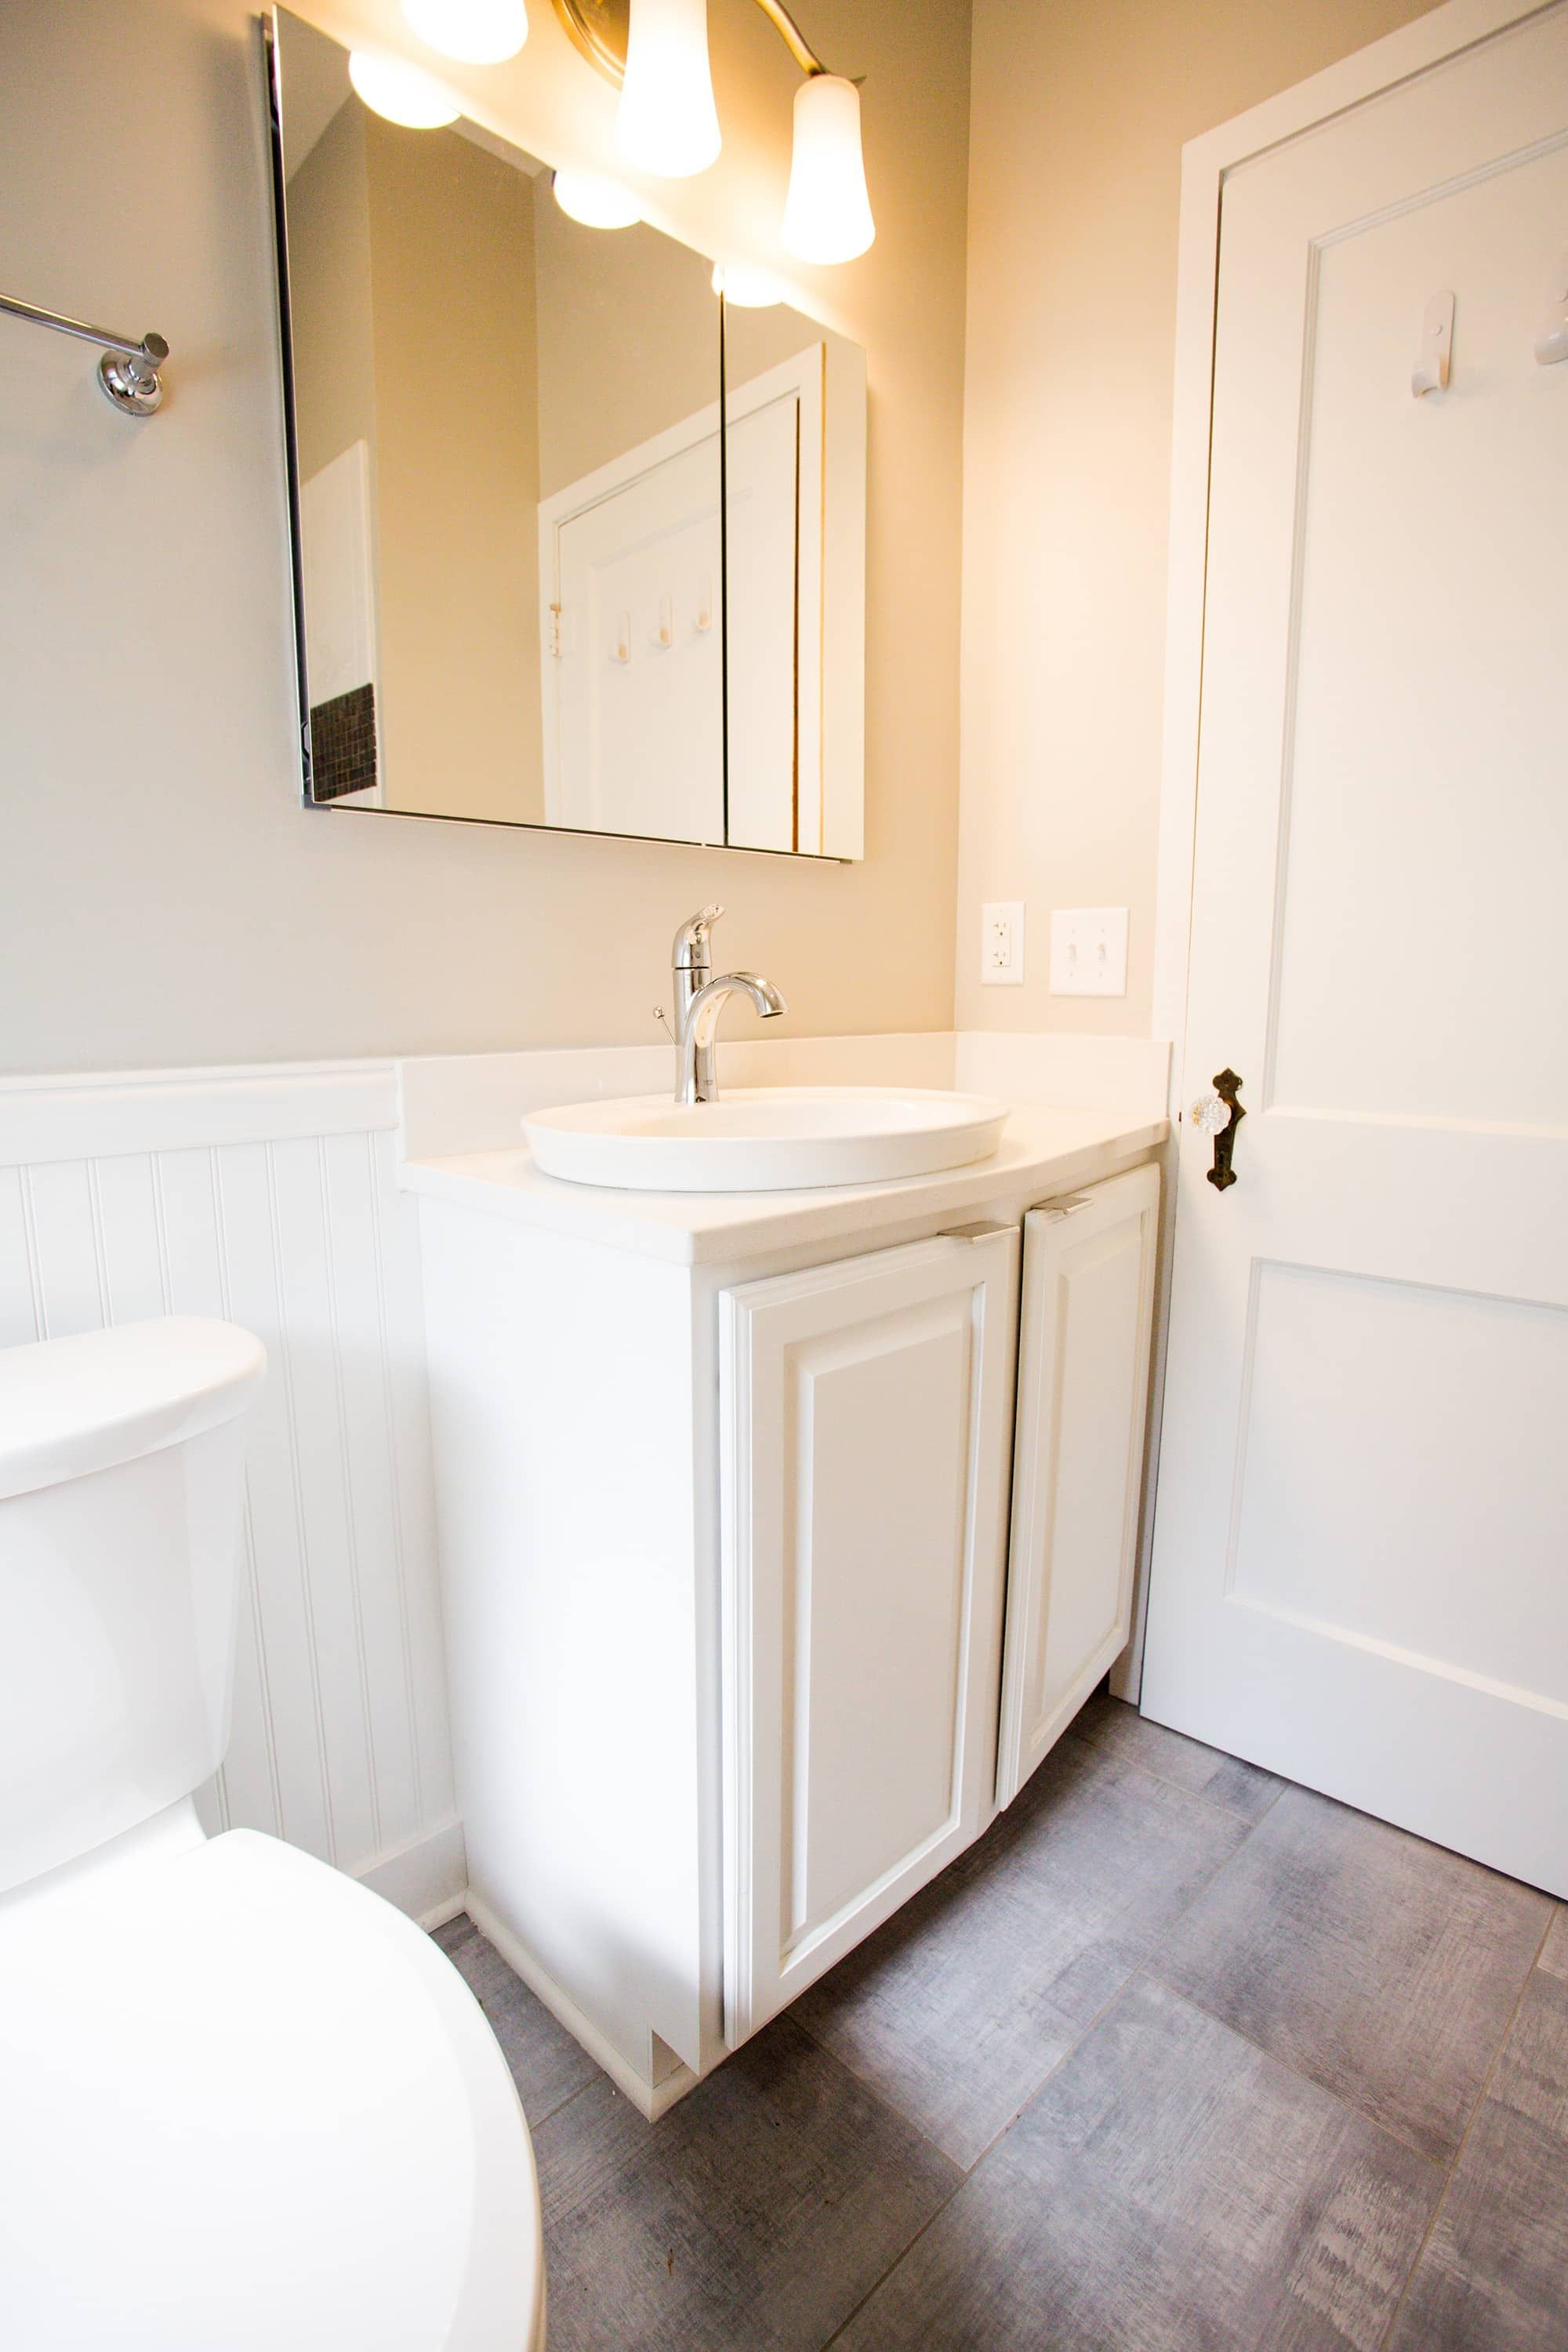 Bathroom Remodel Contractors Louisville Ky Bathroom Ideas - Bathroom remodel louisville ky